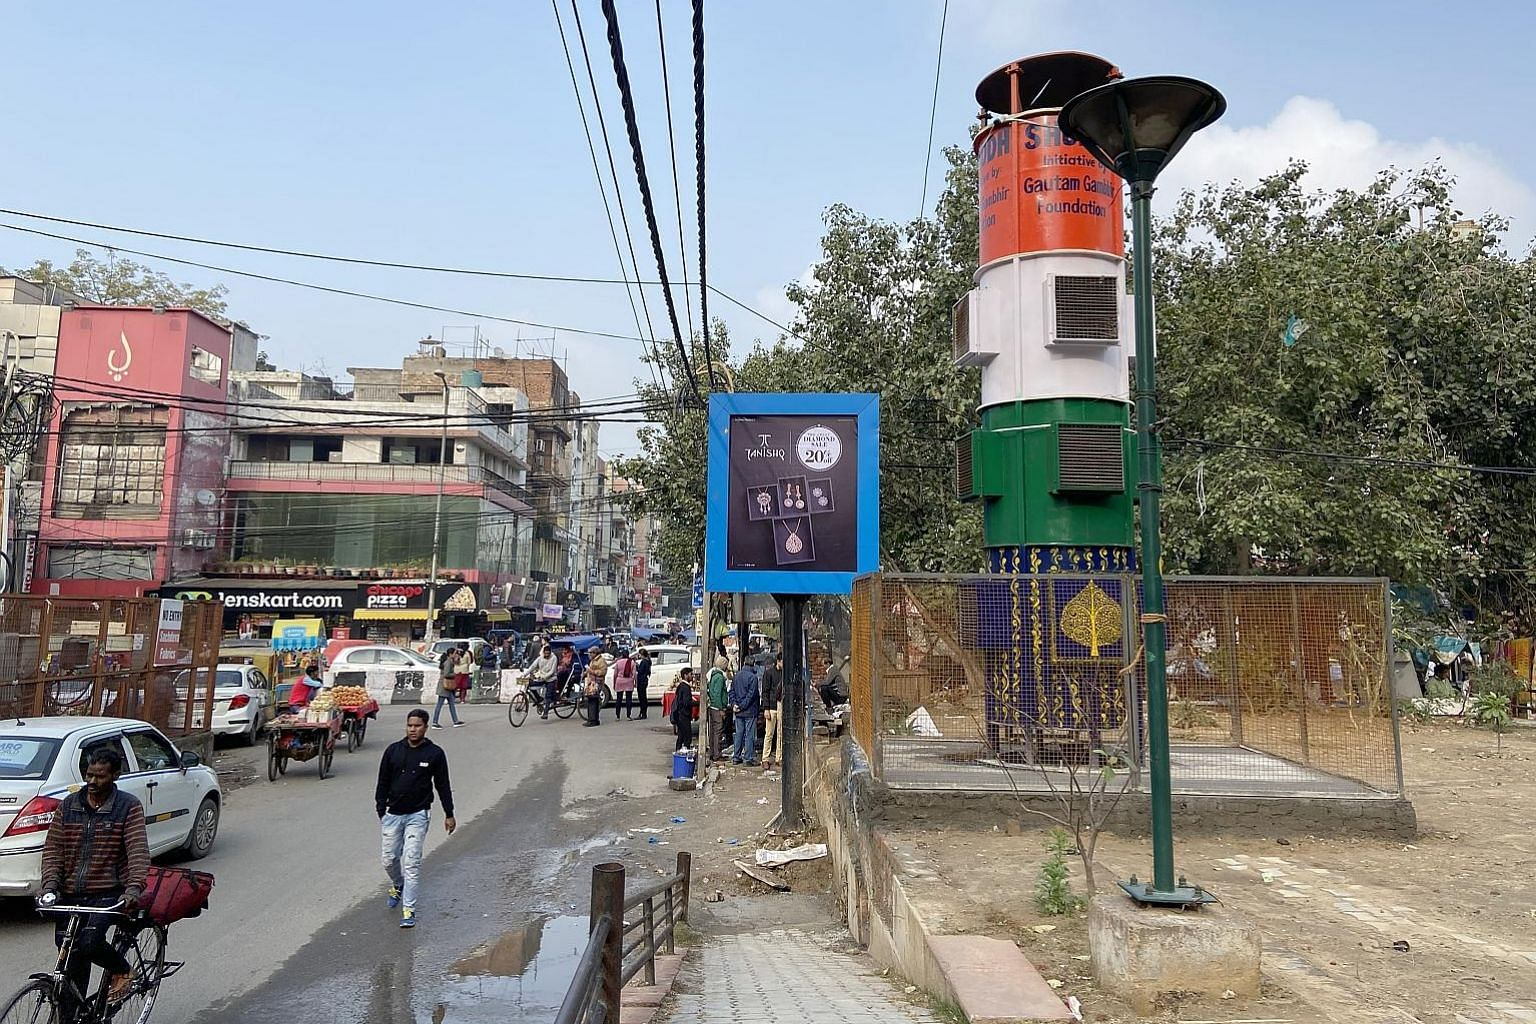 A smog tower in South Delhi's Lajpat Nagar market began operating last week, even though its efficacy has yet to be proven.